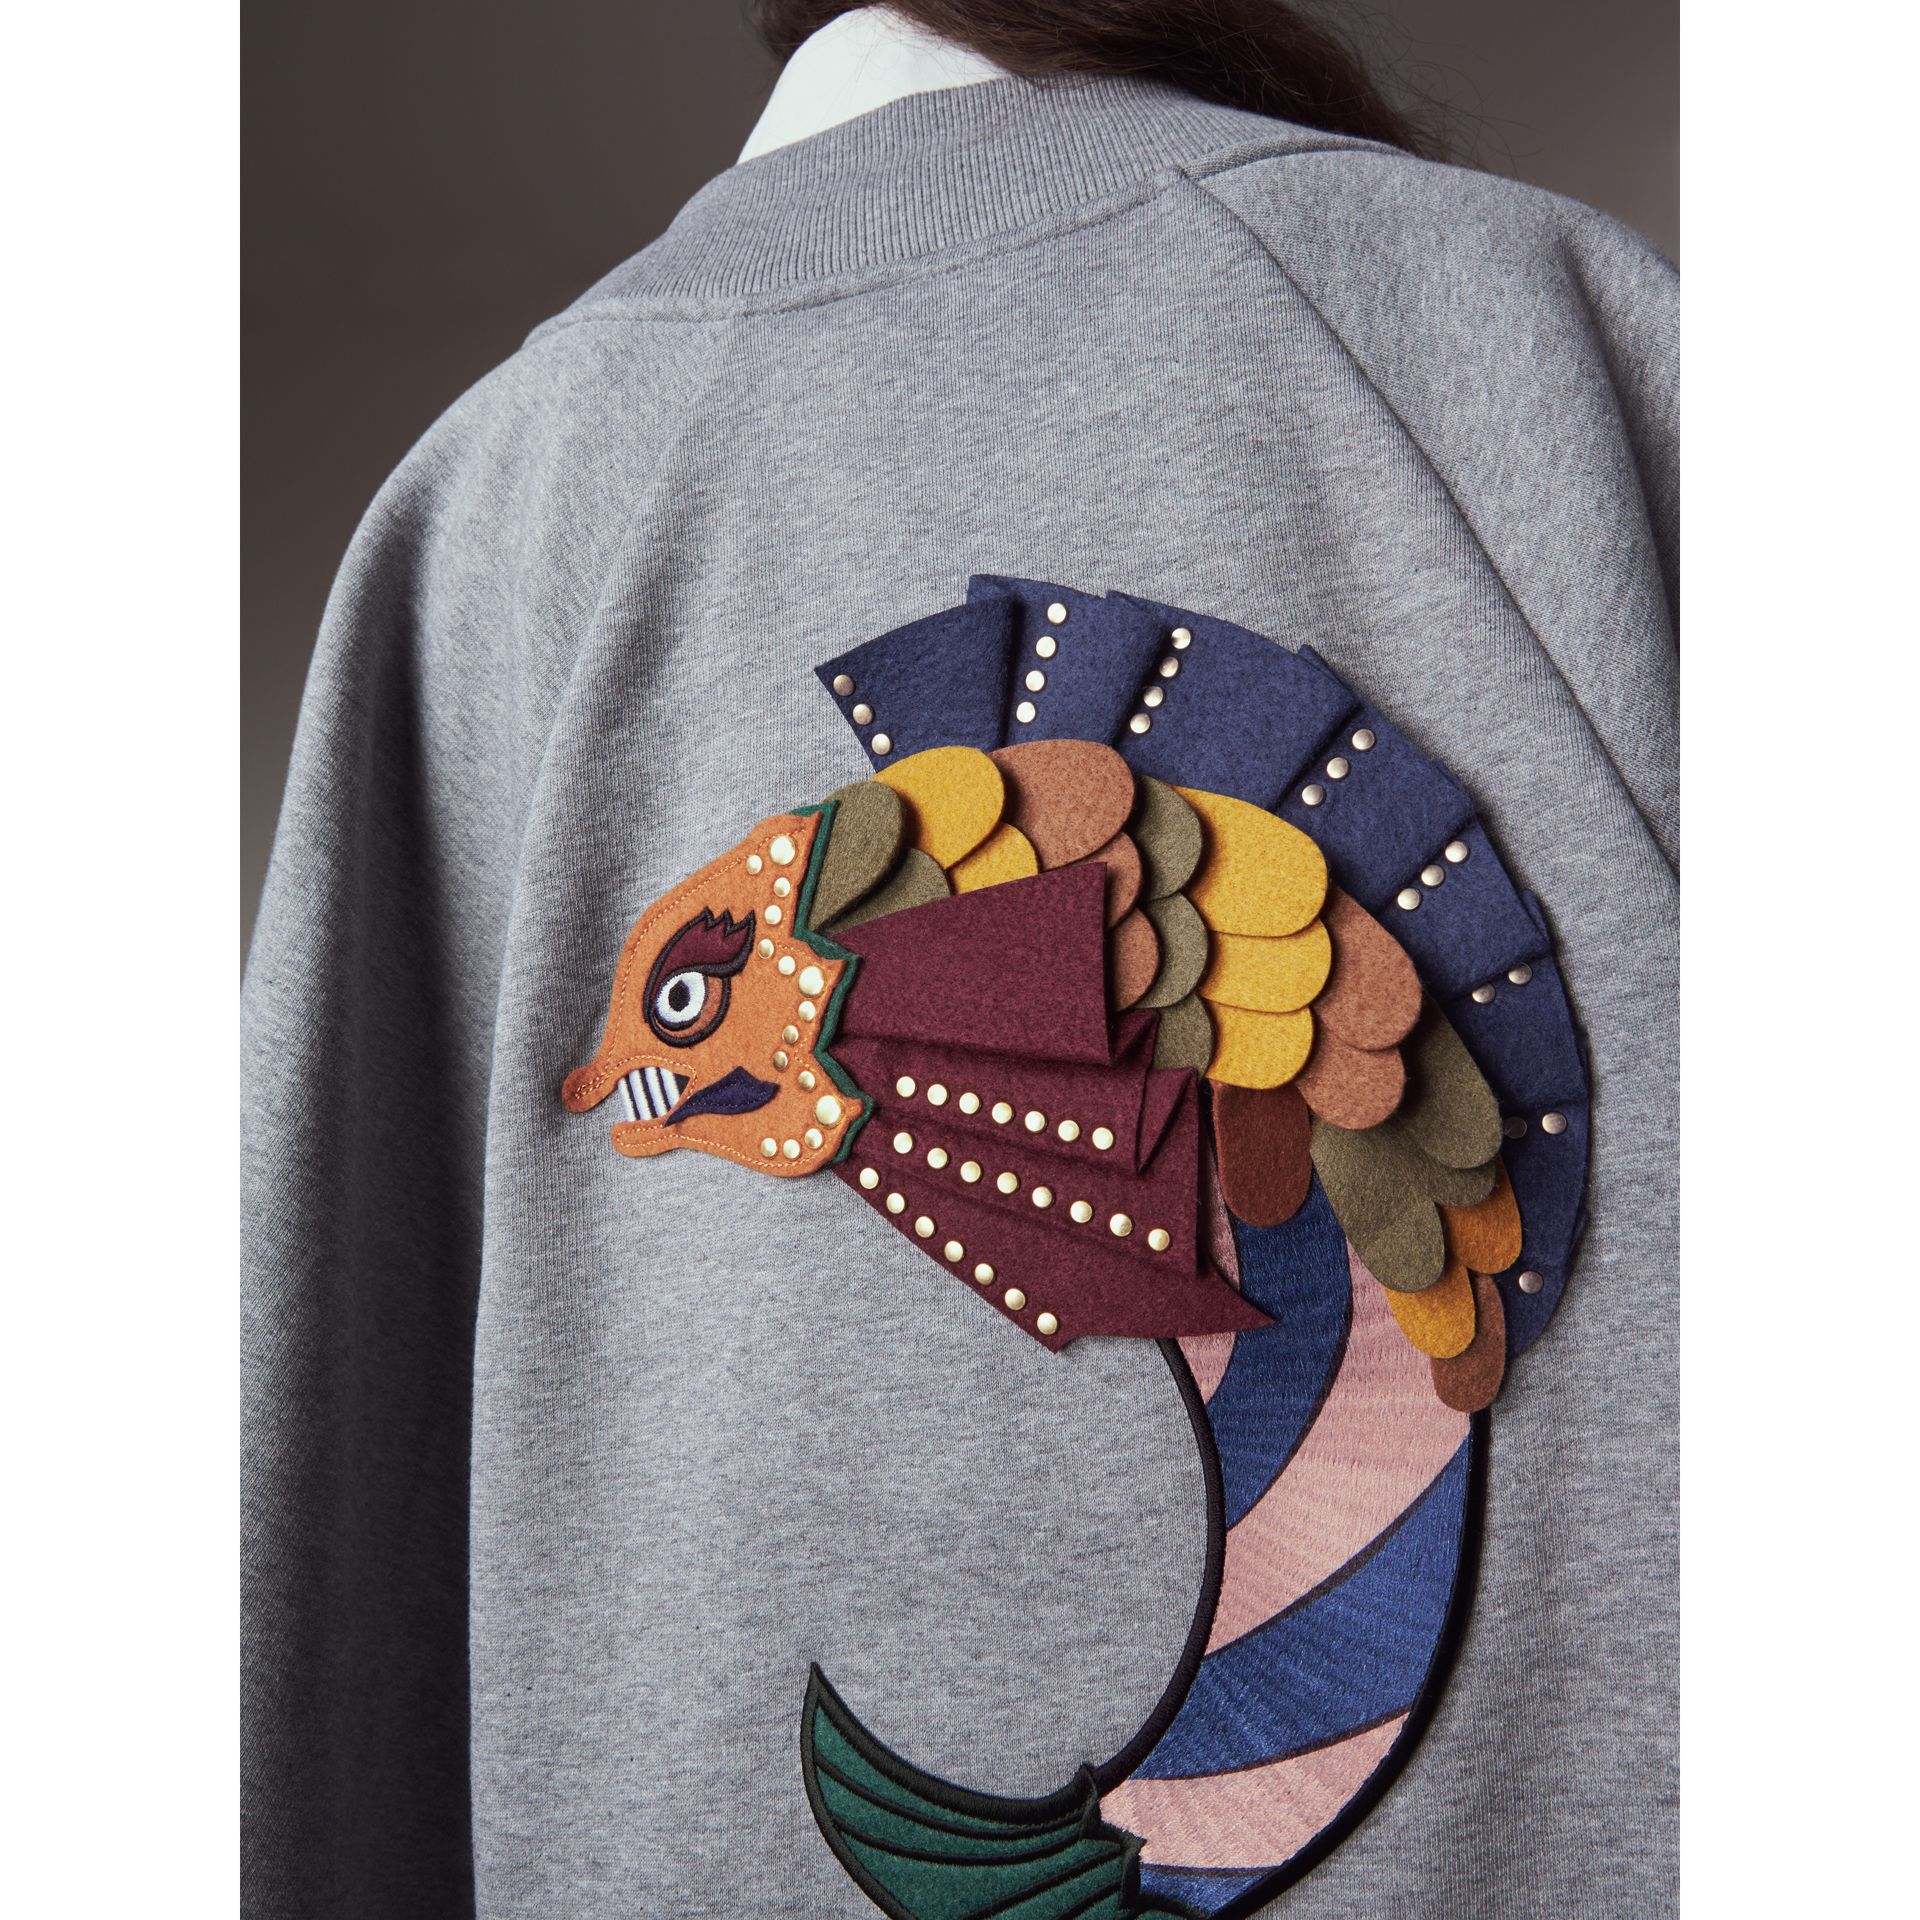 Beasts Appliqué Sweatshirt Cape in Pale Grey Melange - Women | Burberry - gallery image 2